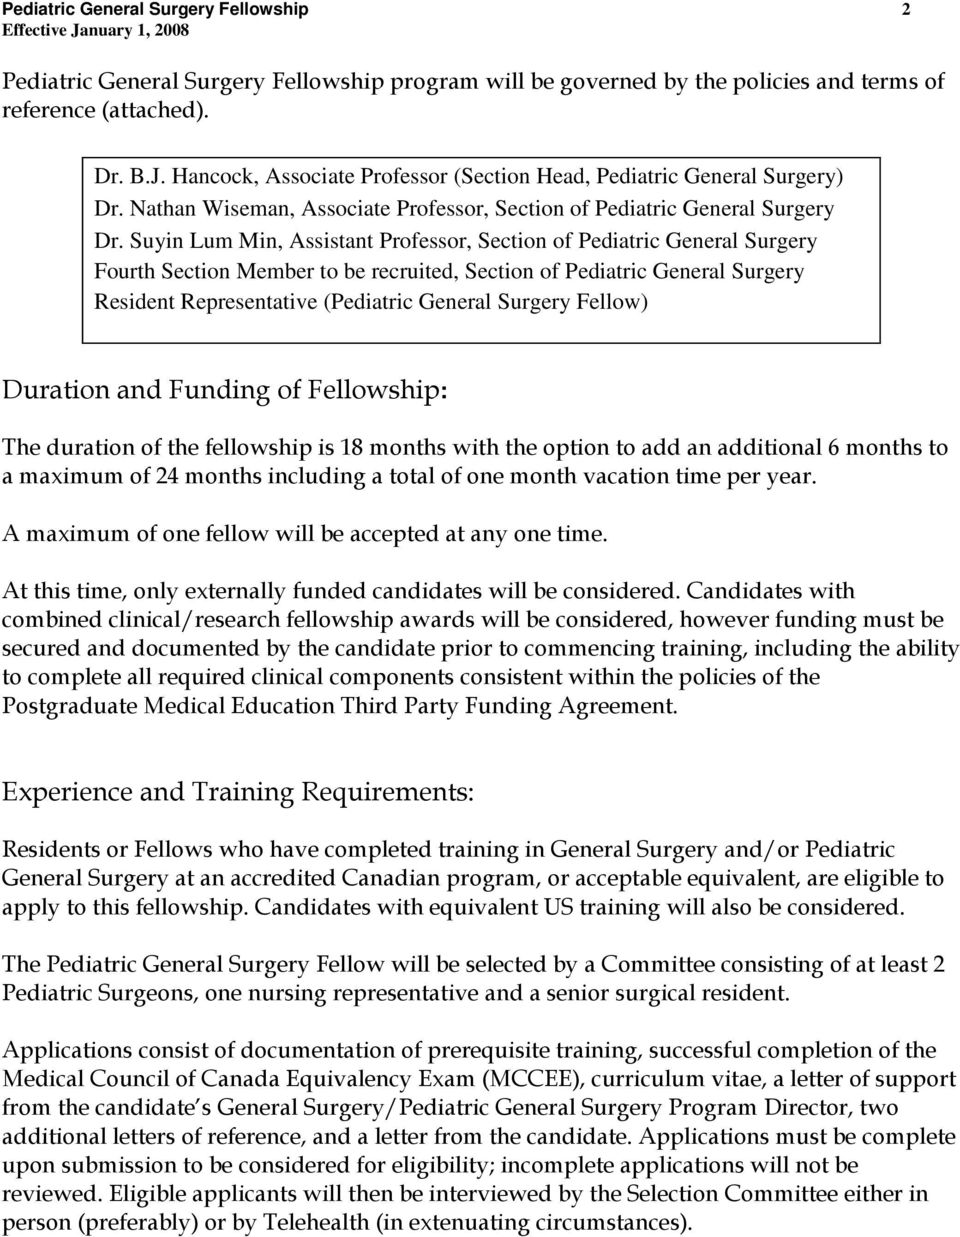 Pediatric General Surgery Fellowship - PDF